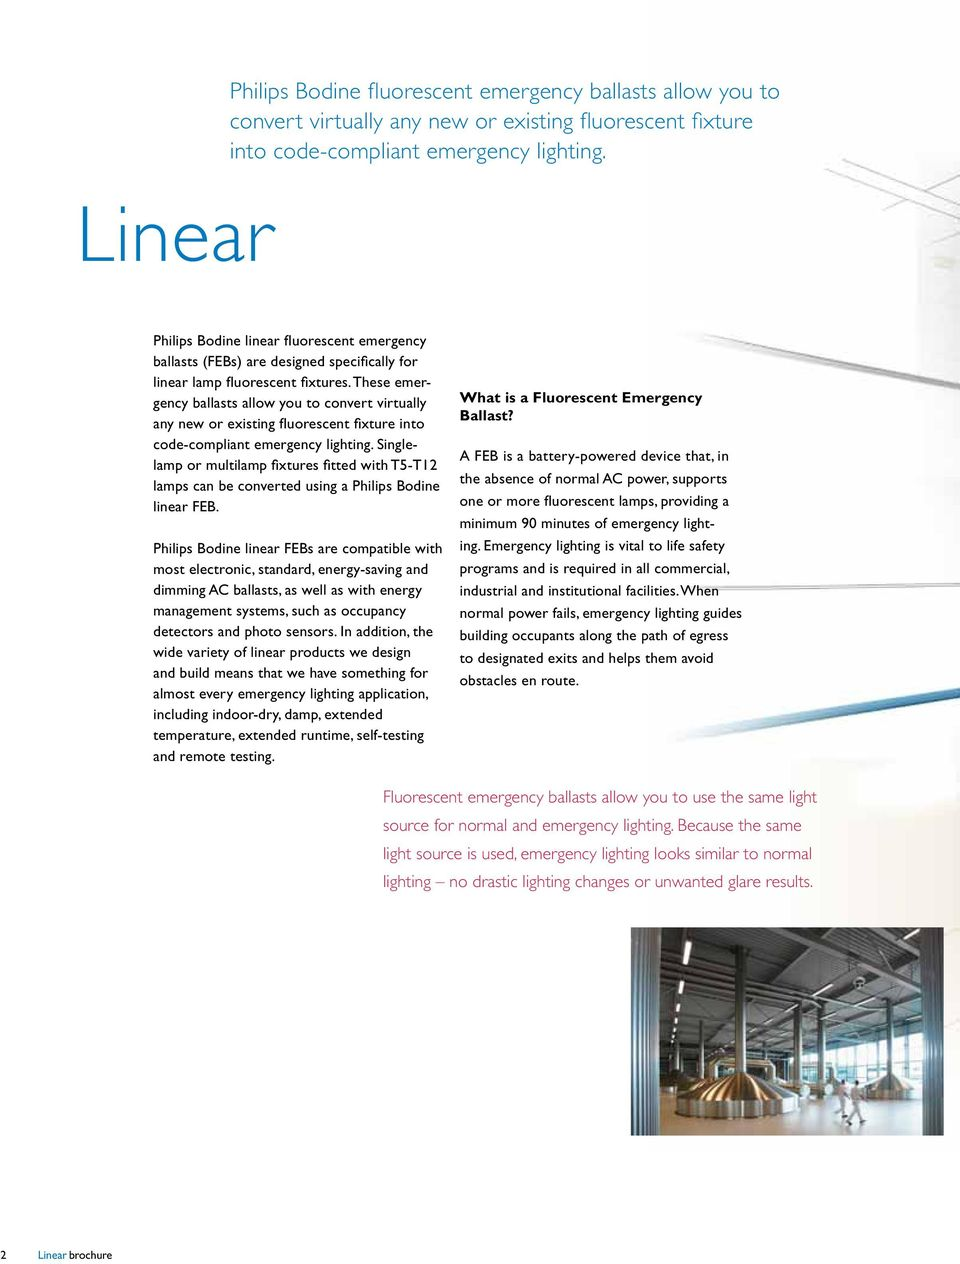 Linear  Emergency Operation for Linear Fluorescent Lamp Fixtures The